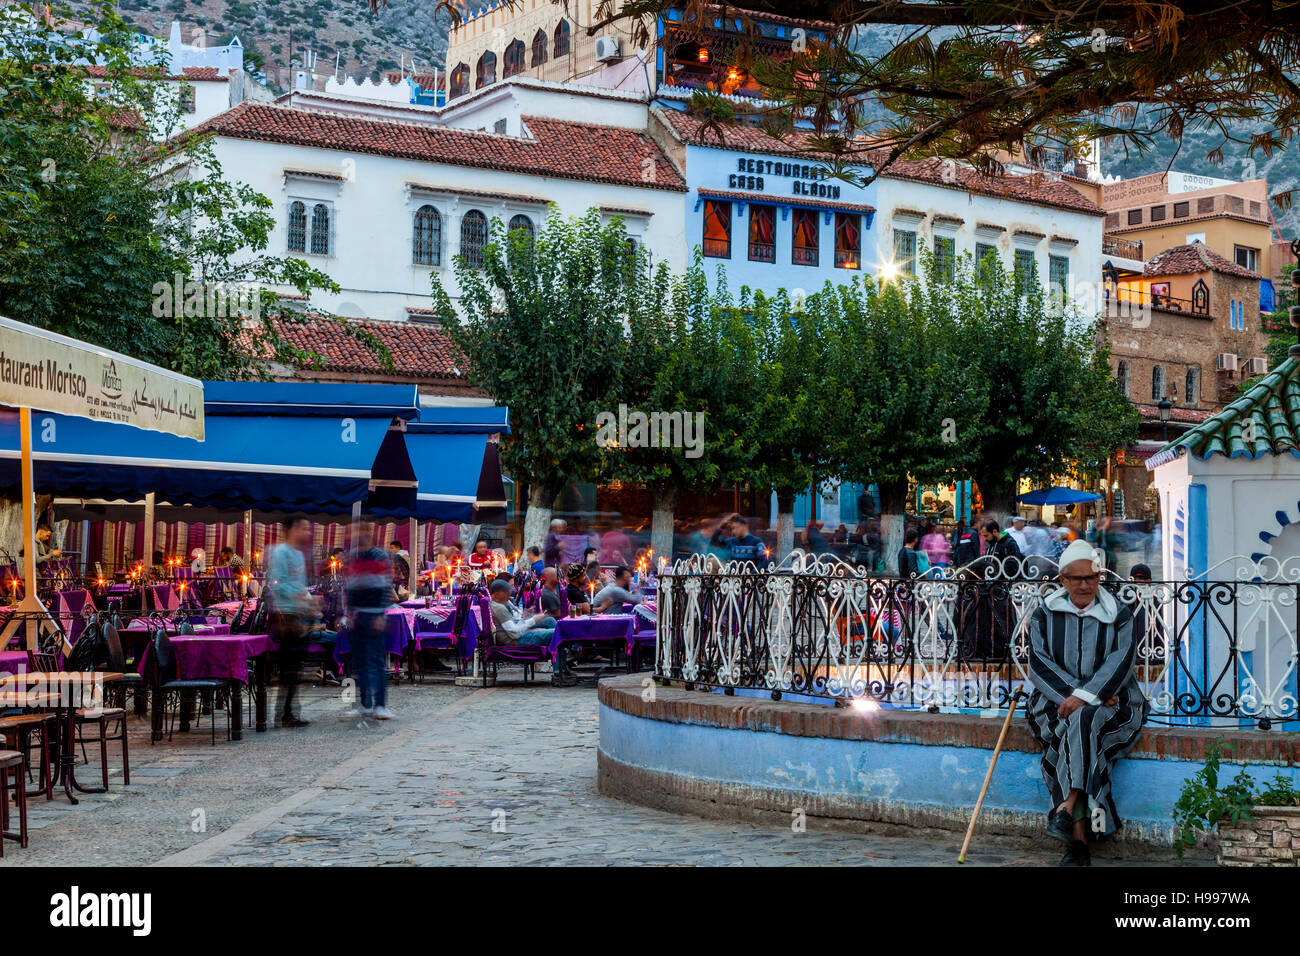 Plaza Uta el-Hammam, Chefchaouen, Morocco Stock Photo: 126208246 - Alamy